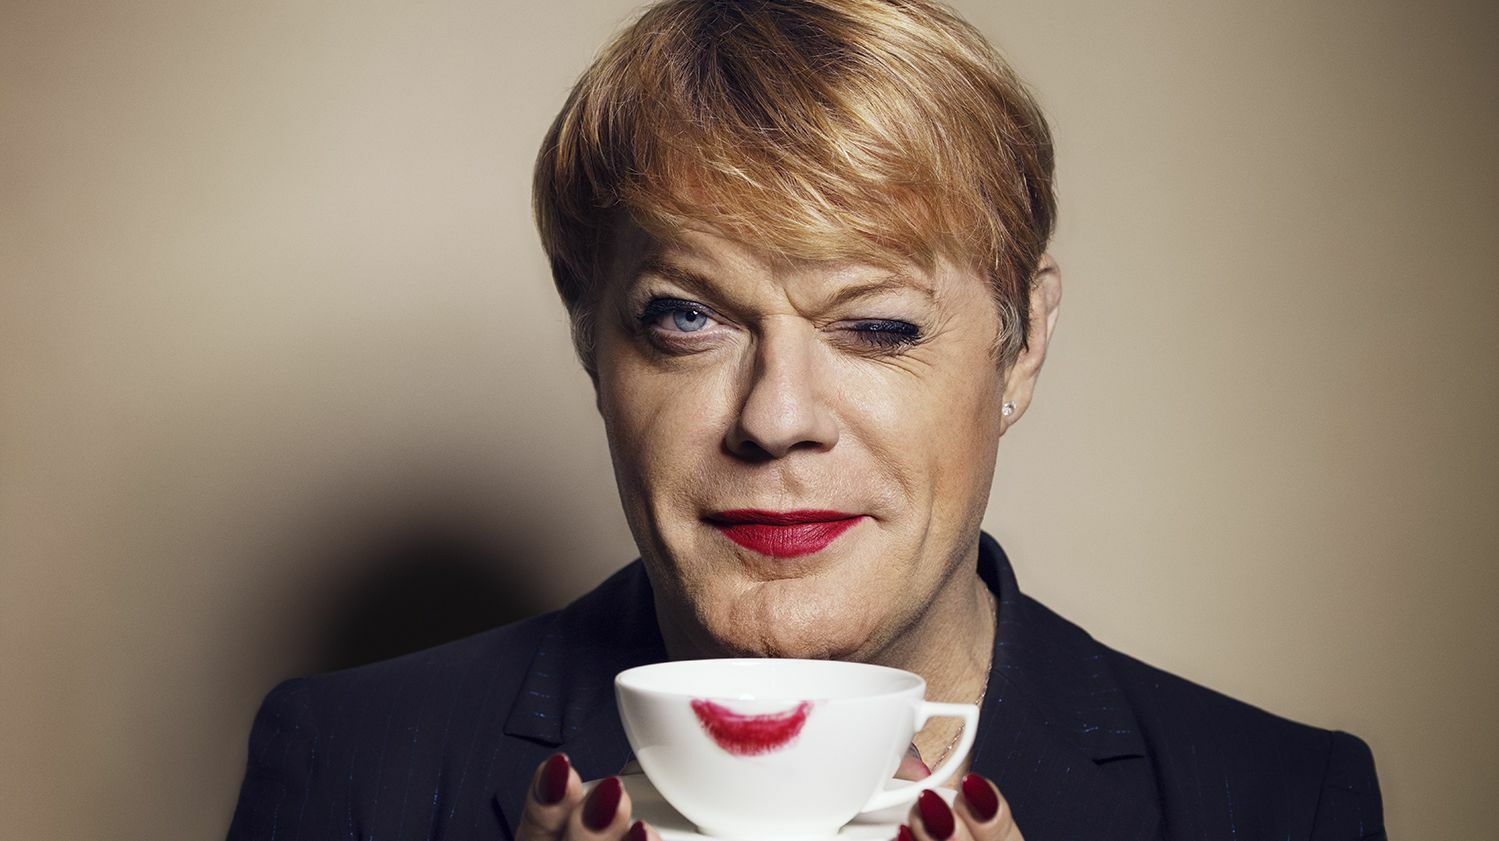 Eddie Izzard in a Global Online Conversation with Elliott Forrest